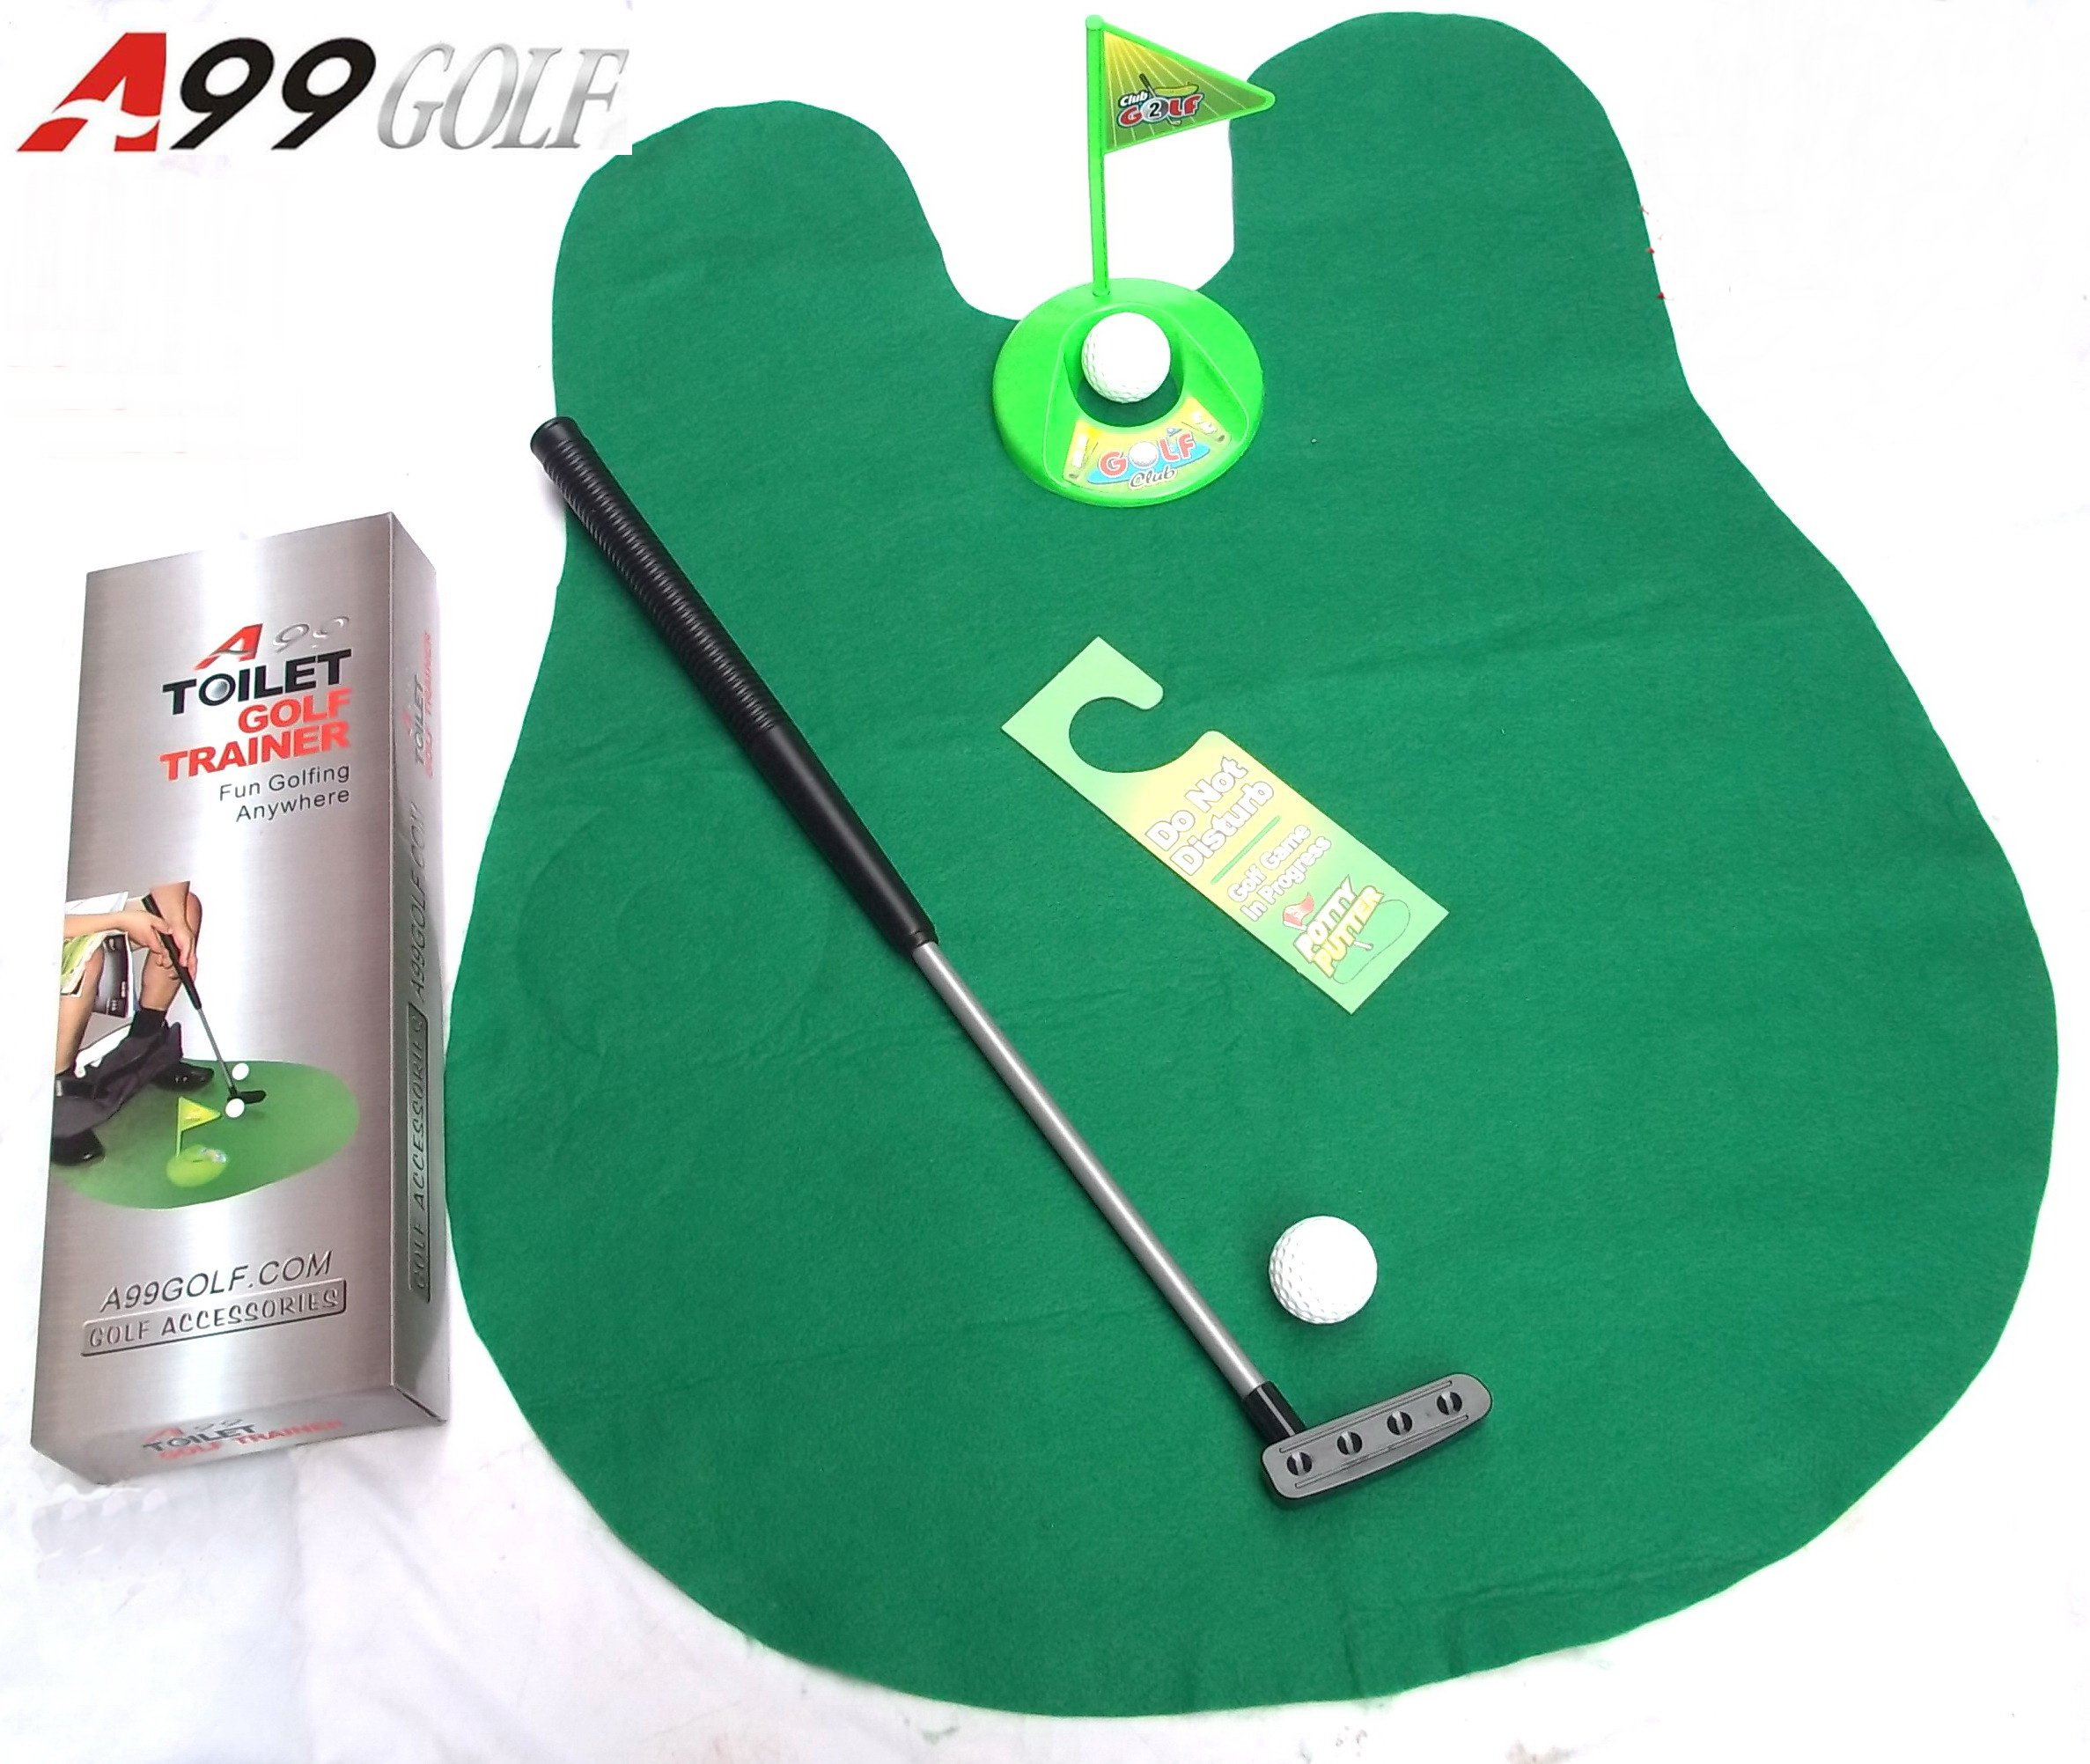 2sets of A99 Golf Toilet Bathroom Mini Golf Mat Set Game Potty Putter